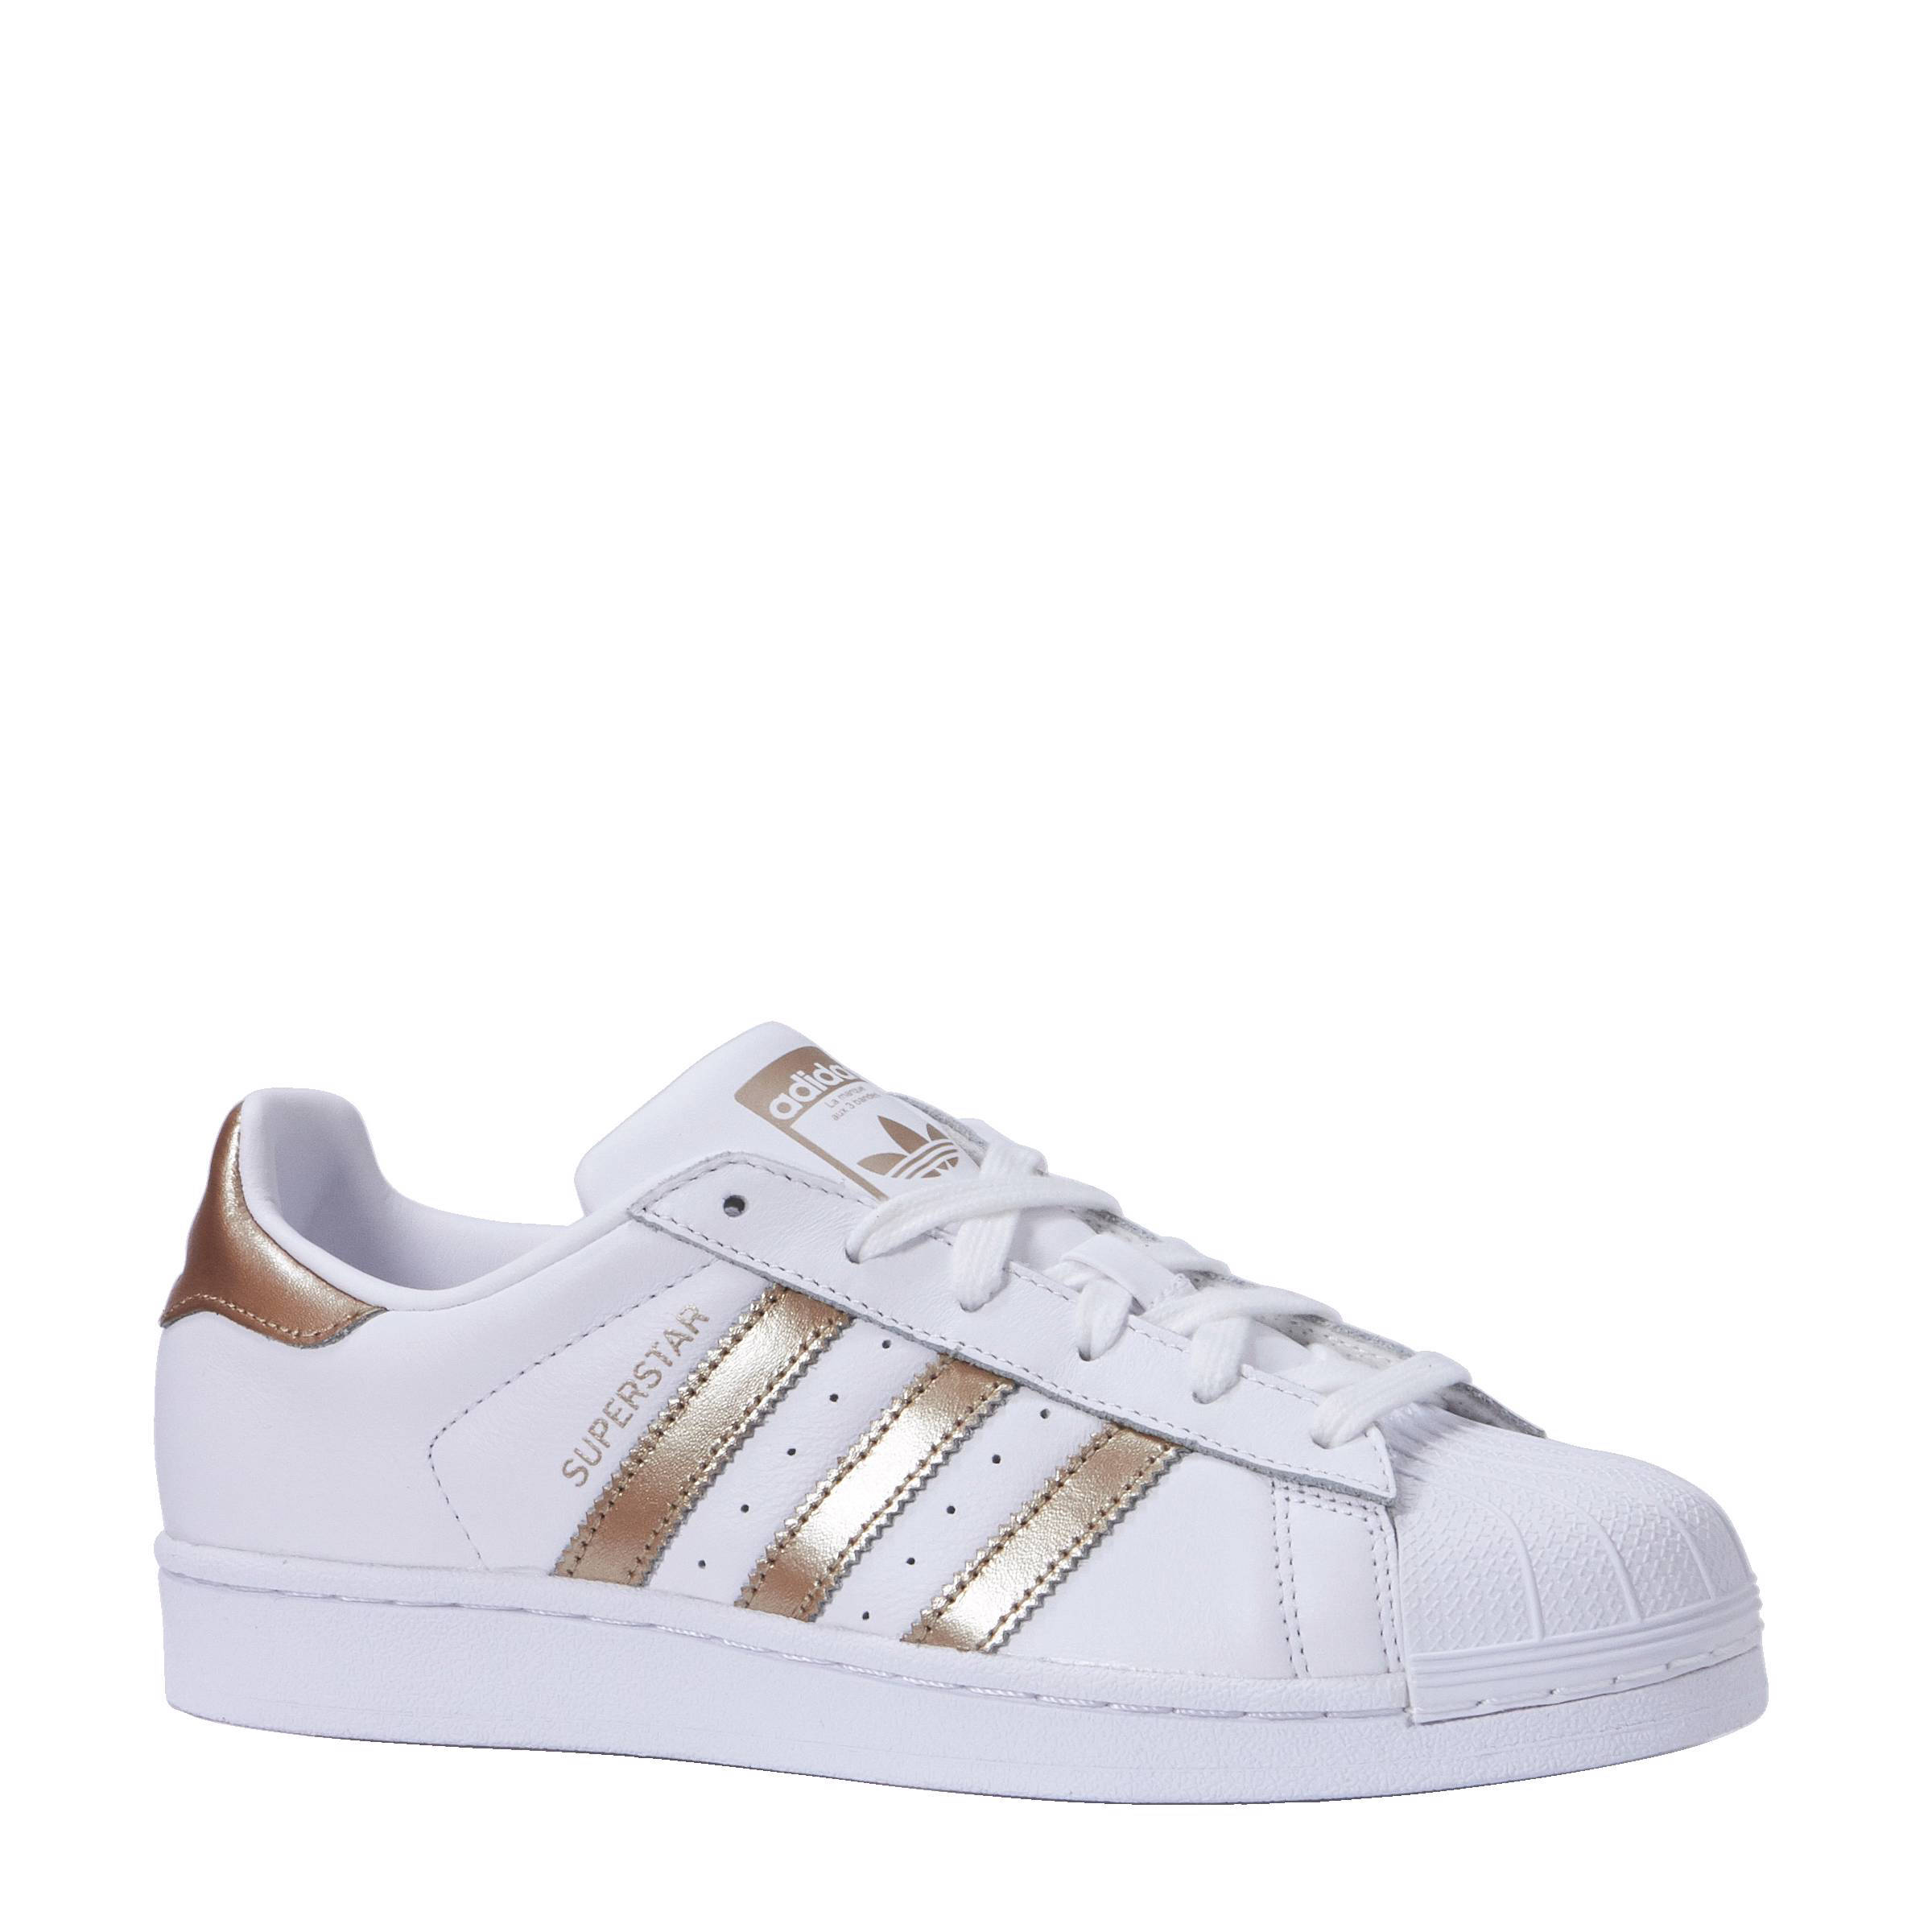 adidas superstar dames zwart wit goud